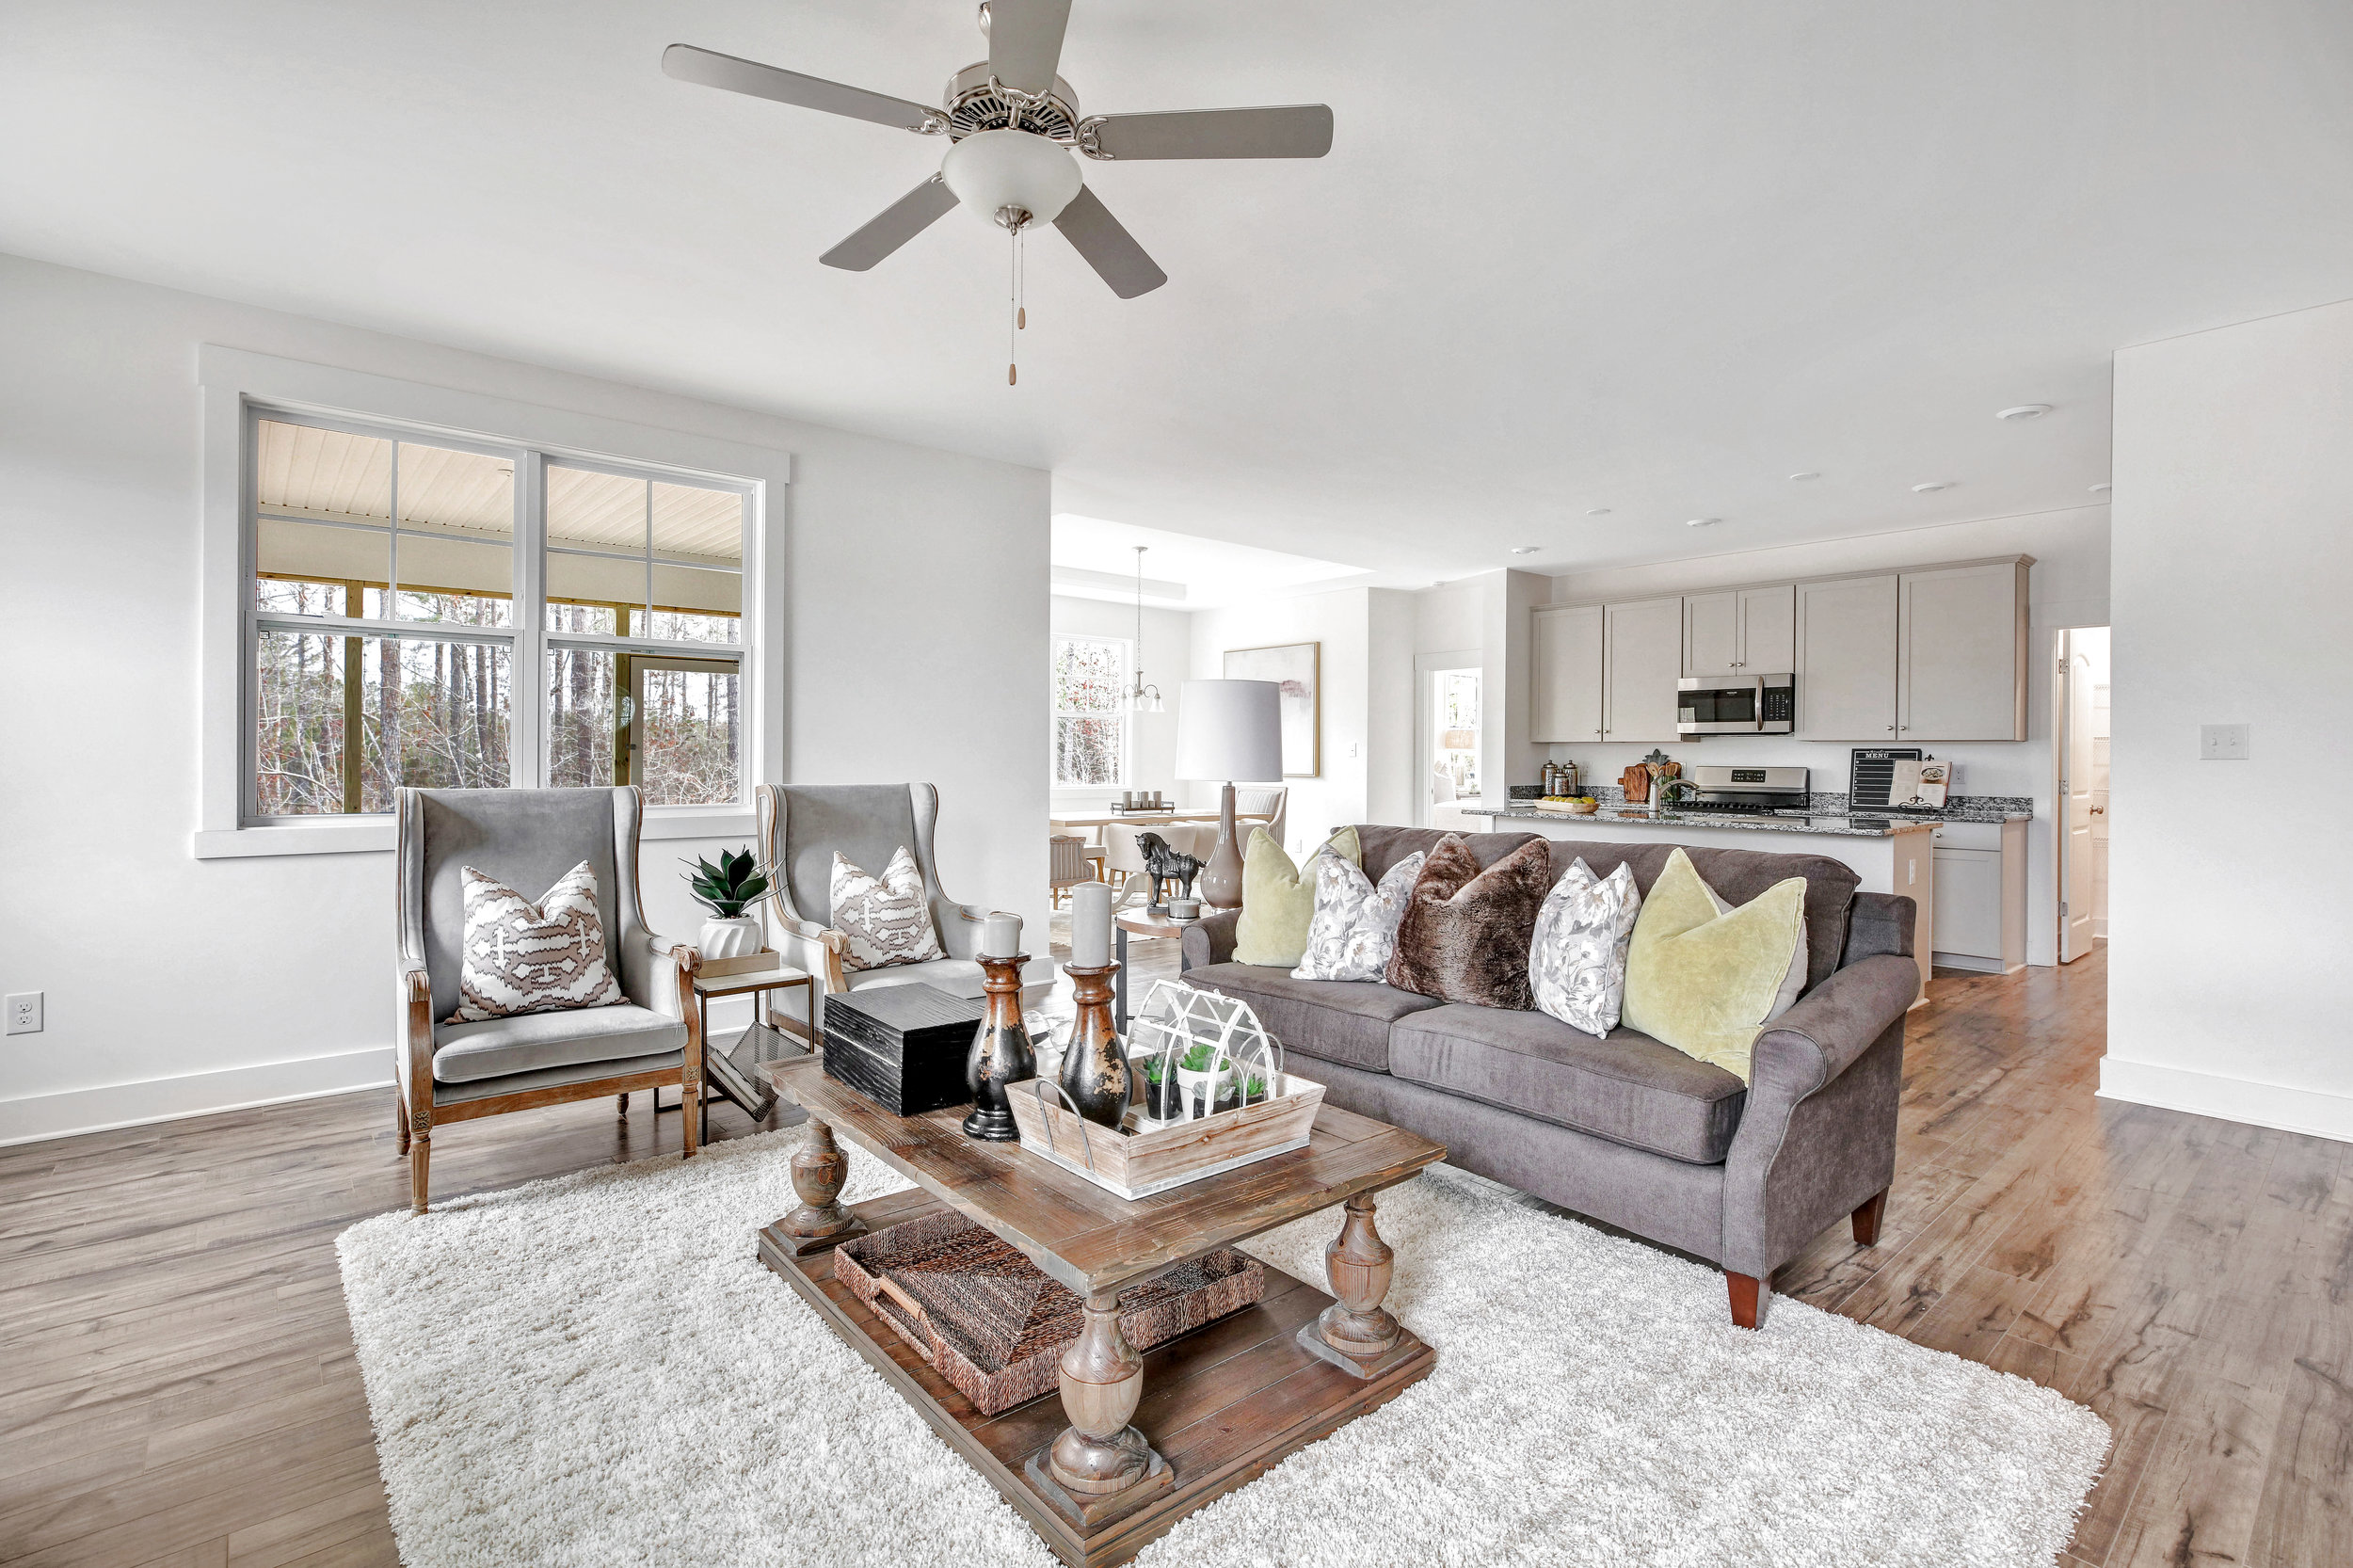 A Vacant Staging for Lifestyle Home Builders, Photo by: Tour Virginia Homes